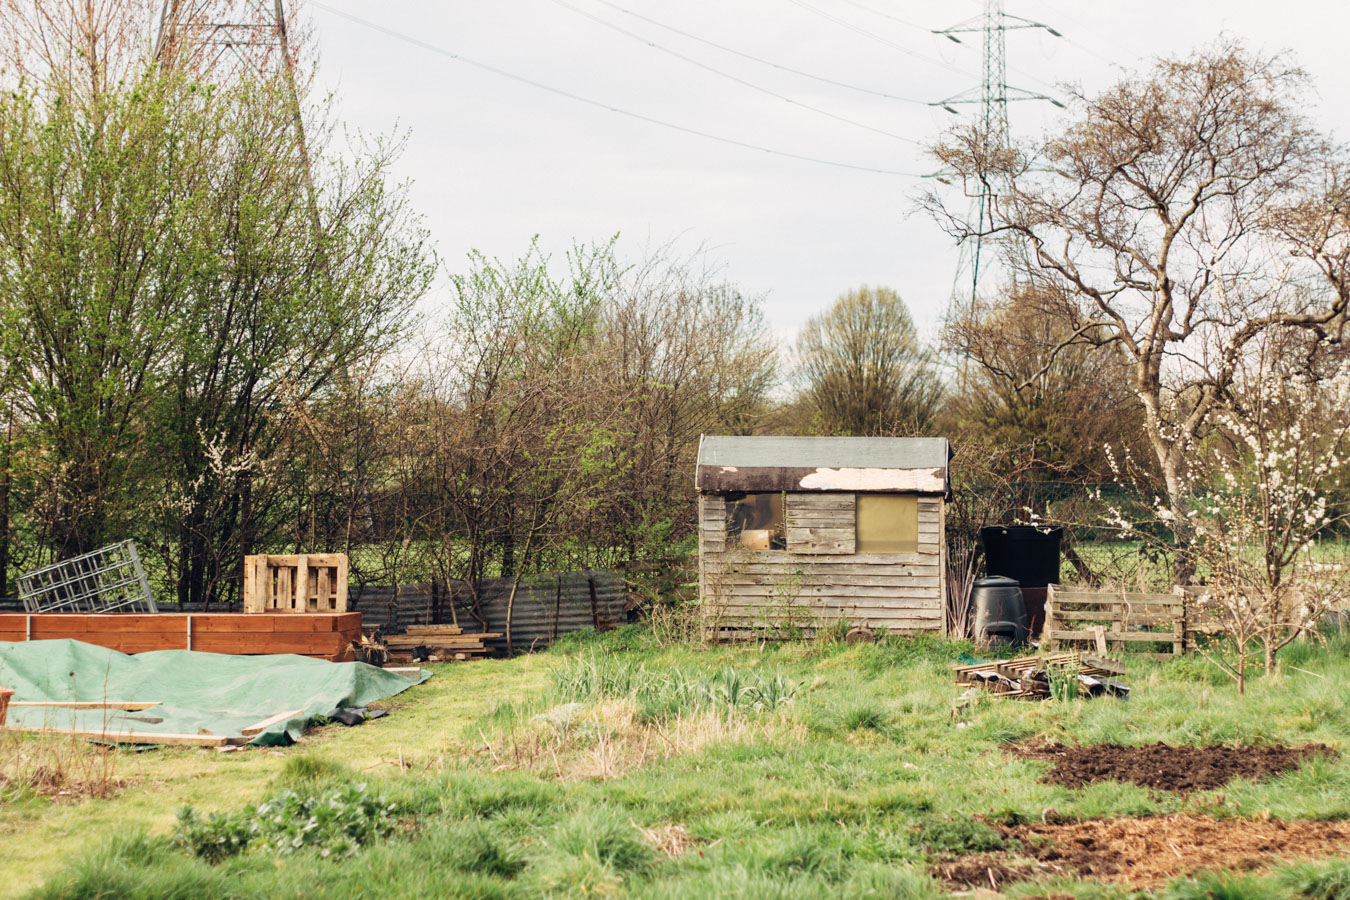 Wanstead Allotments